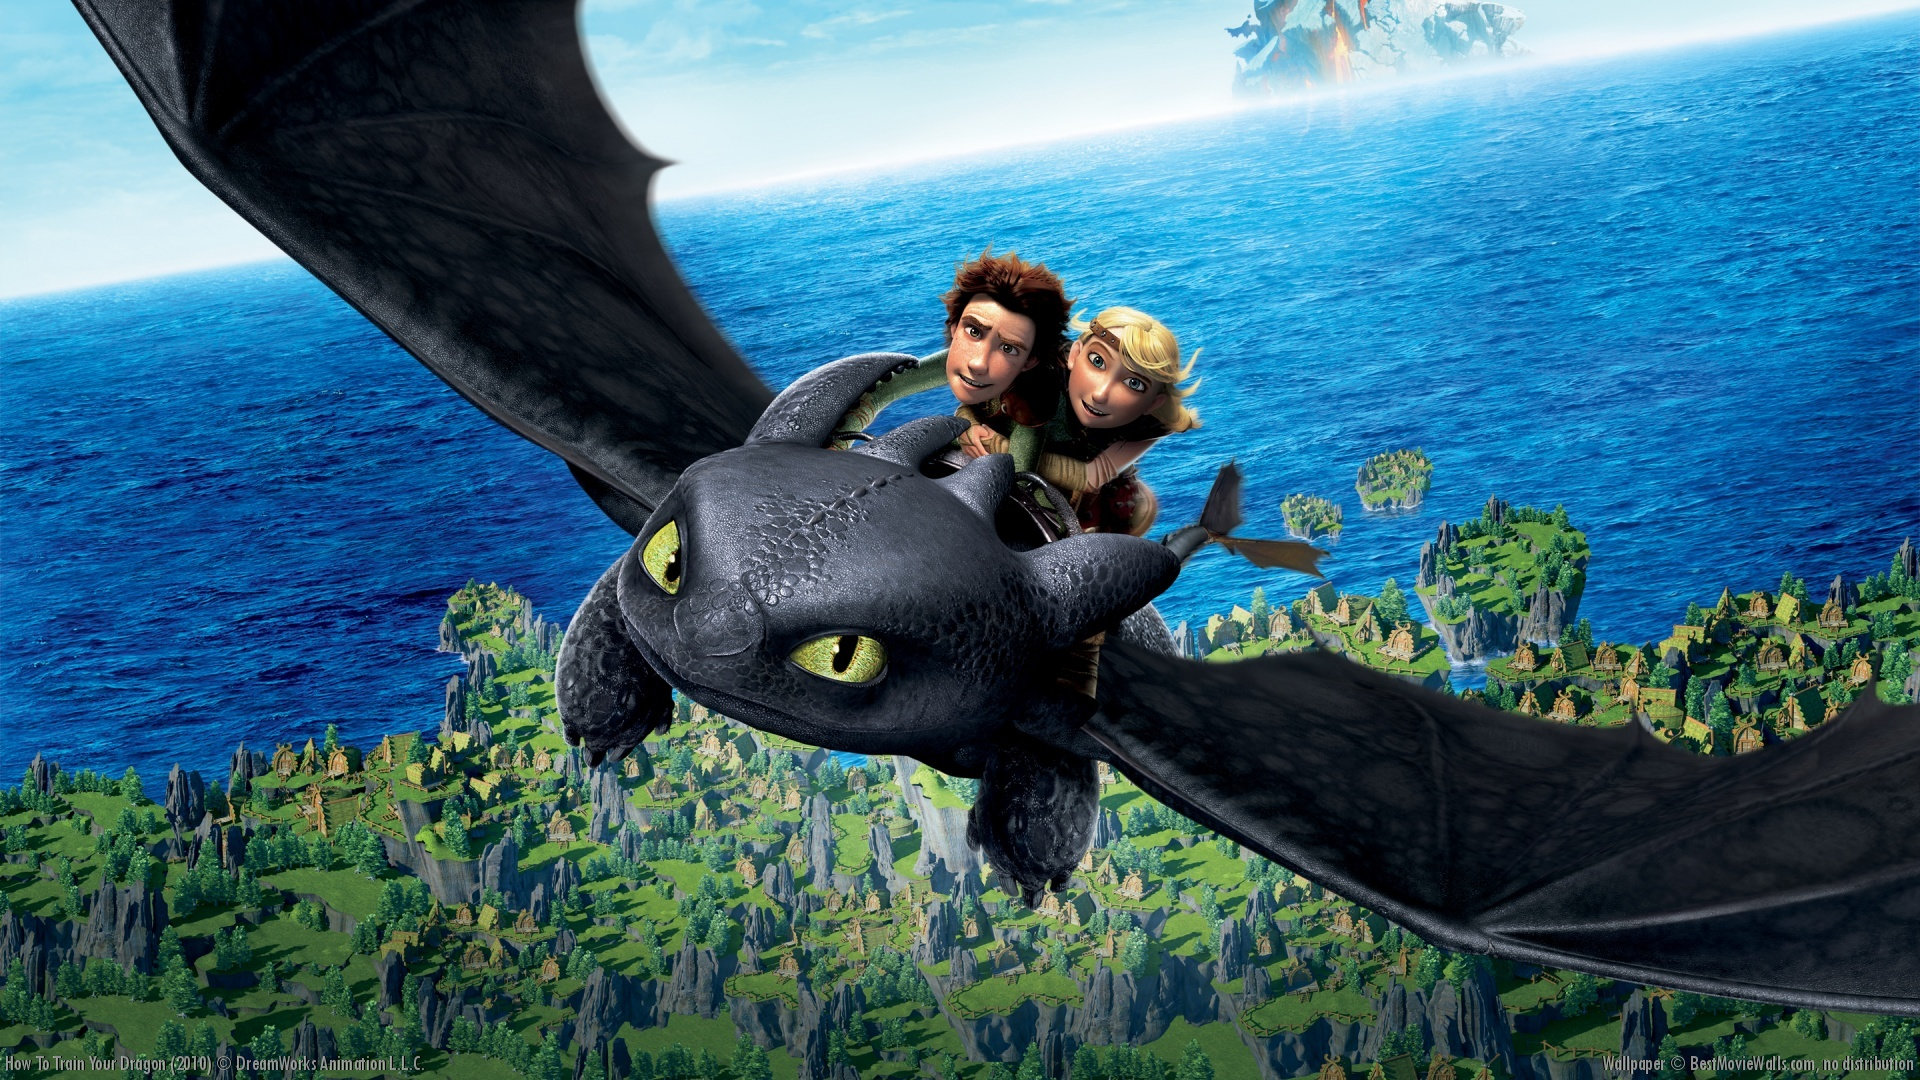 Dreamworks animation images how to train your dragon wallpaper hd dreamworks animation images how to train your dragon wallpaper hd wallpaper and background photos ccuart Image collections